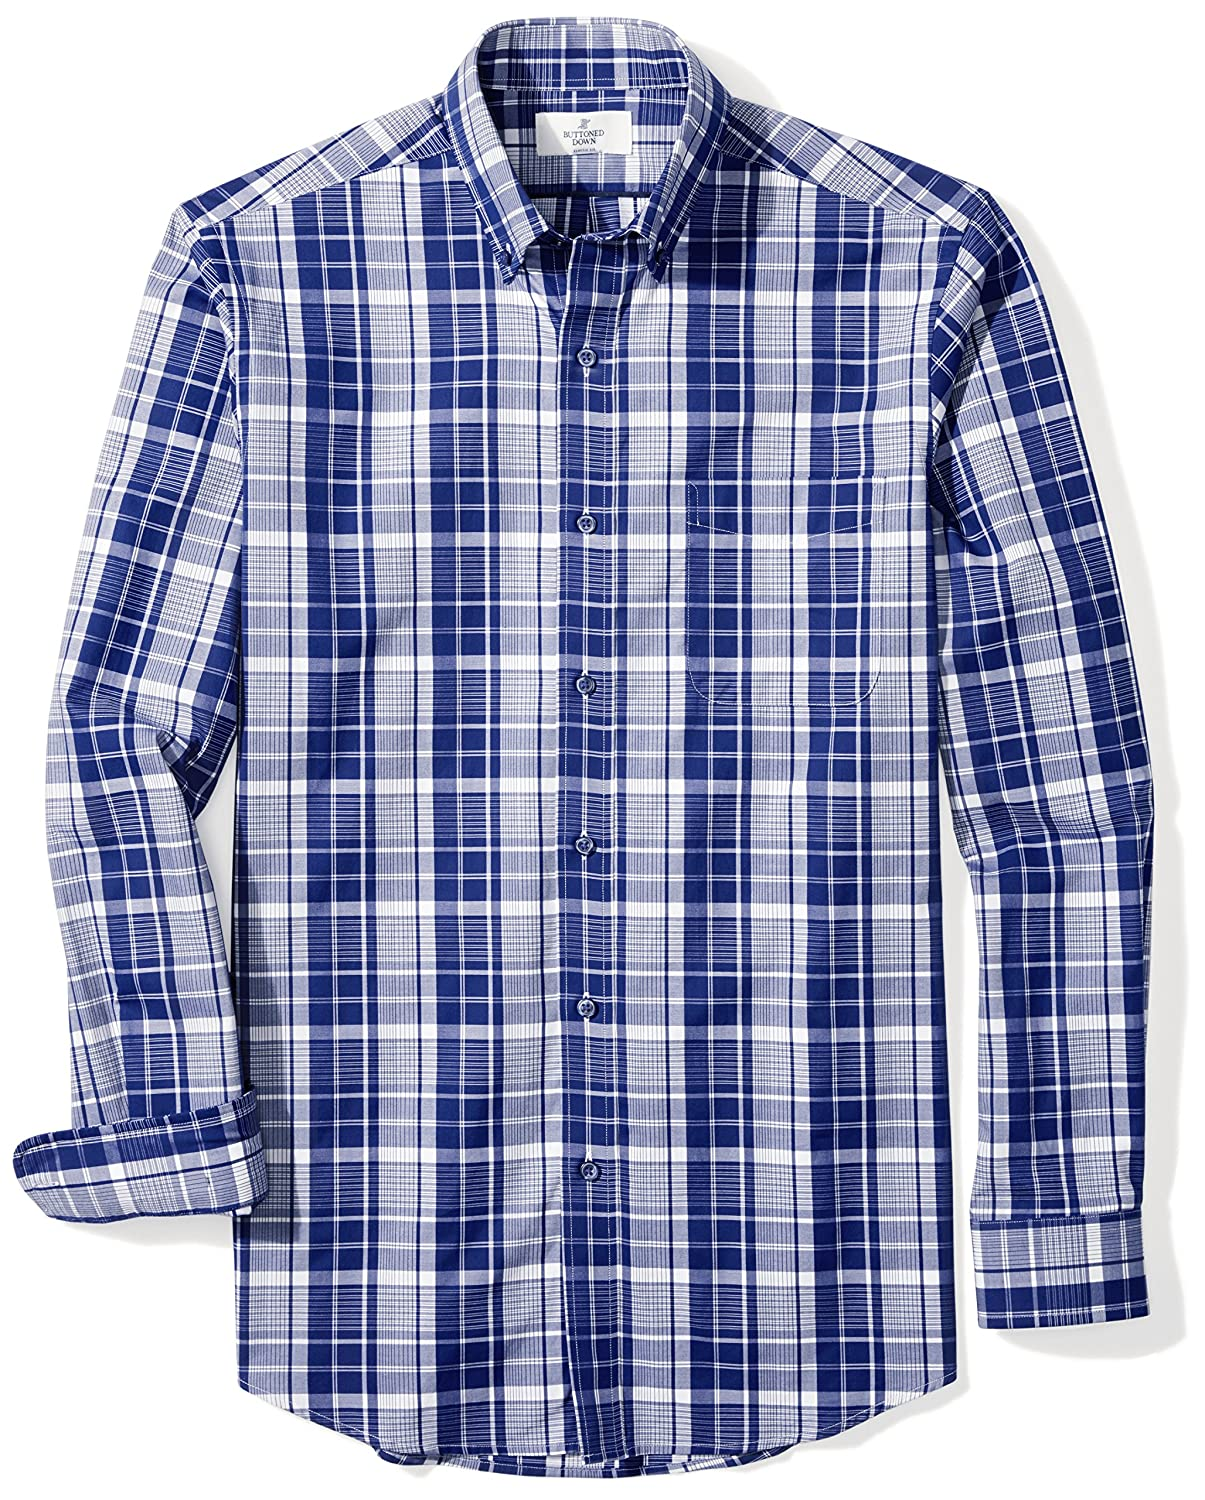 BUTTONED DOWN Men's Classic Fit Supima Cotton Dress Casual Shirt (Discontinued Patterns)